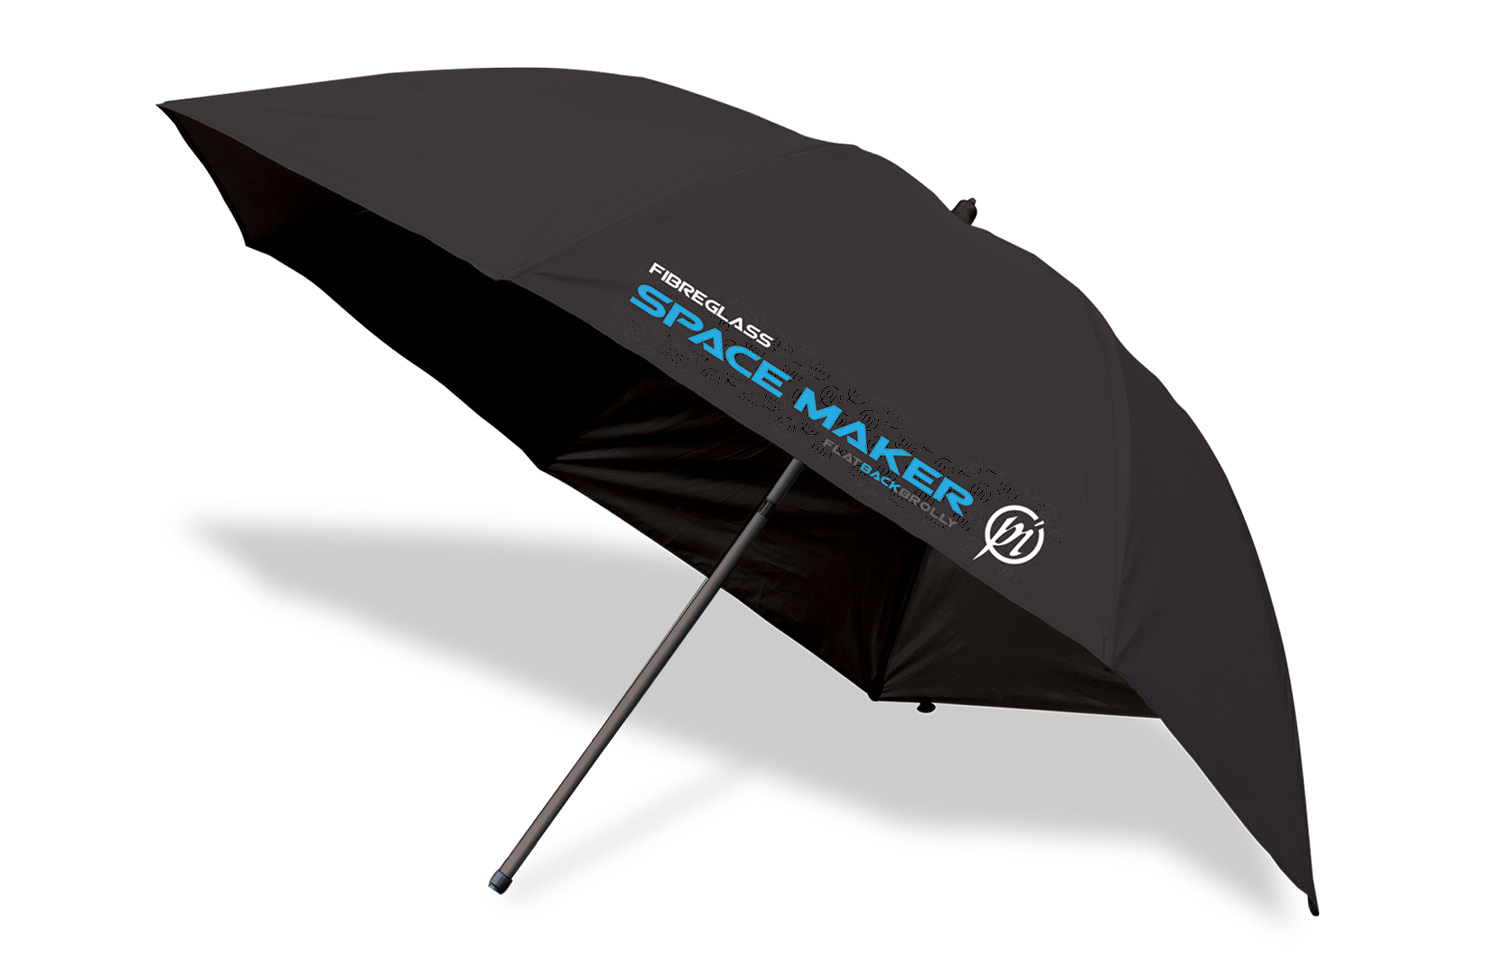 Зонт Space maker flat back brolly